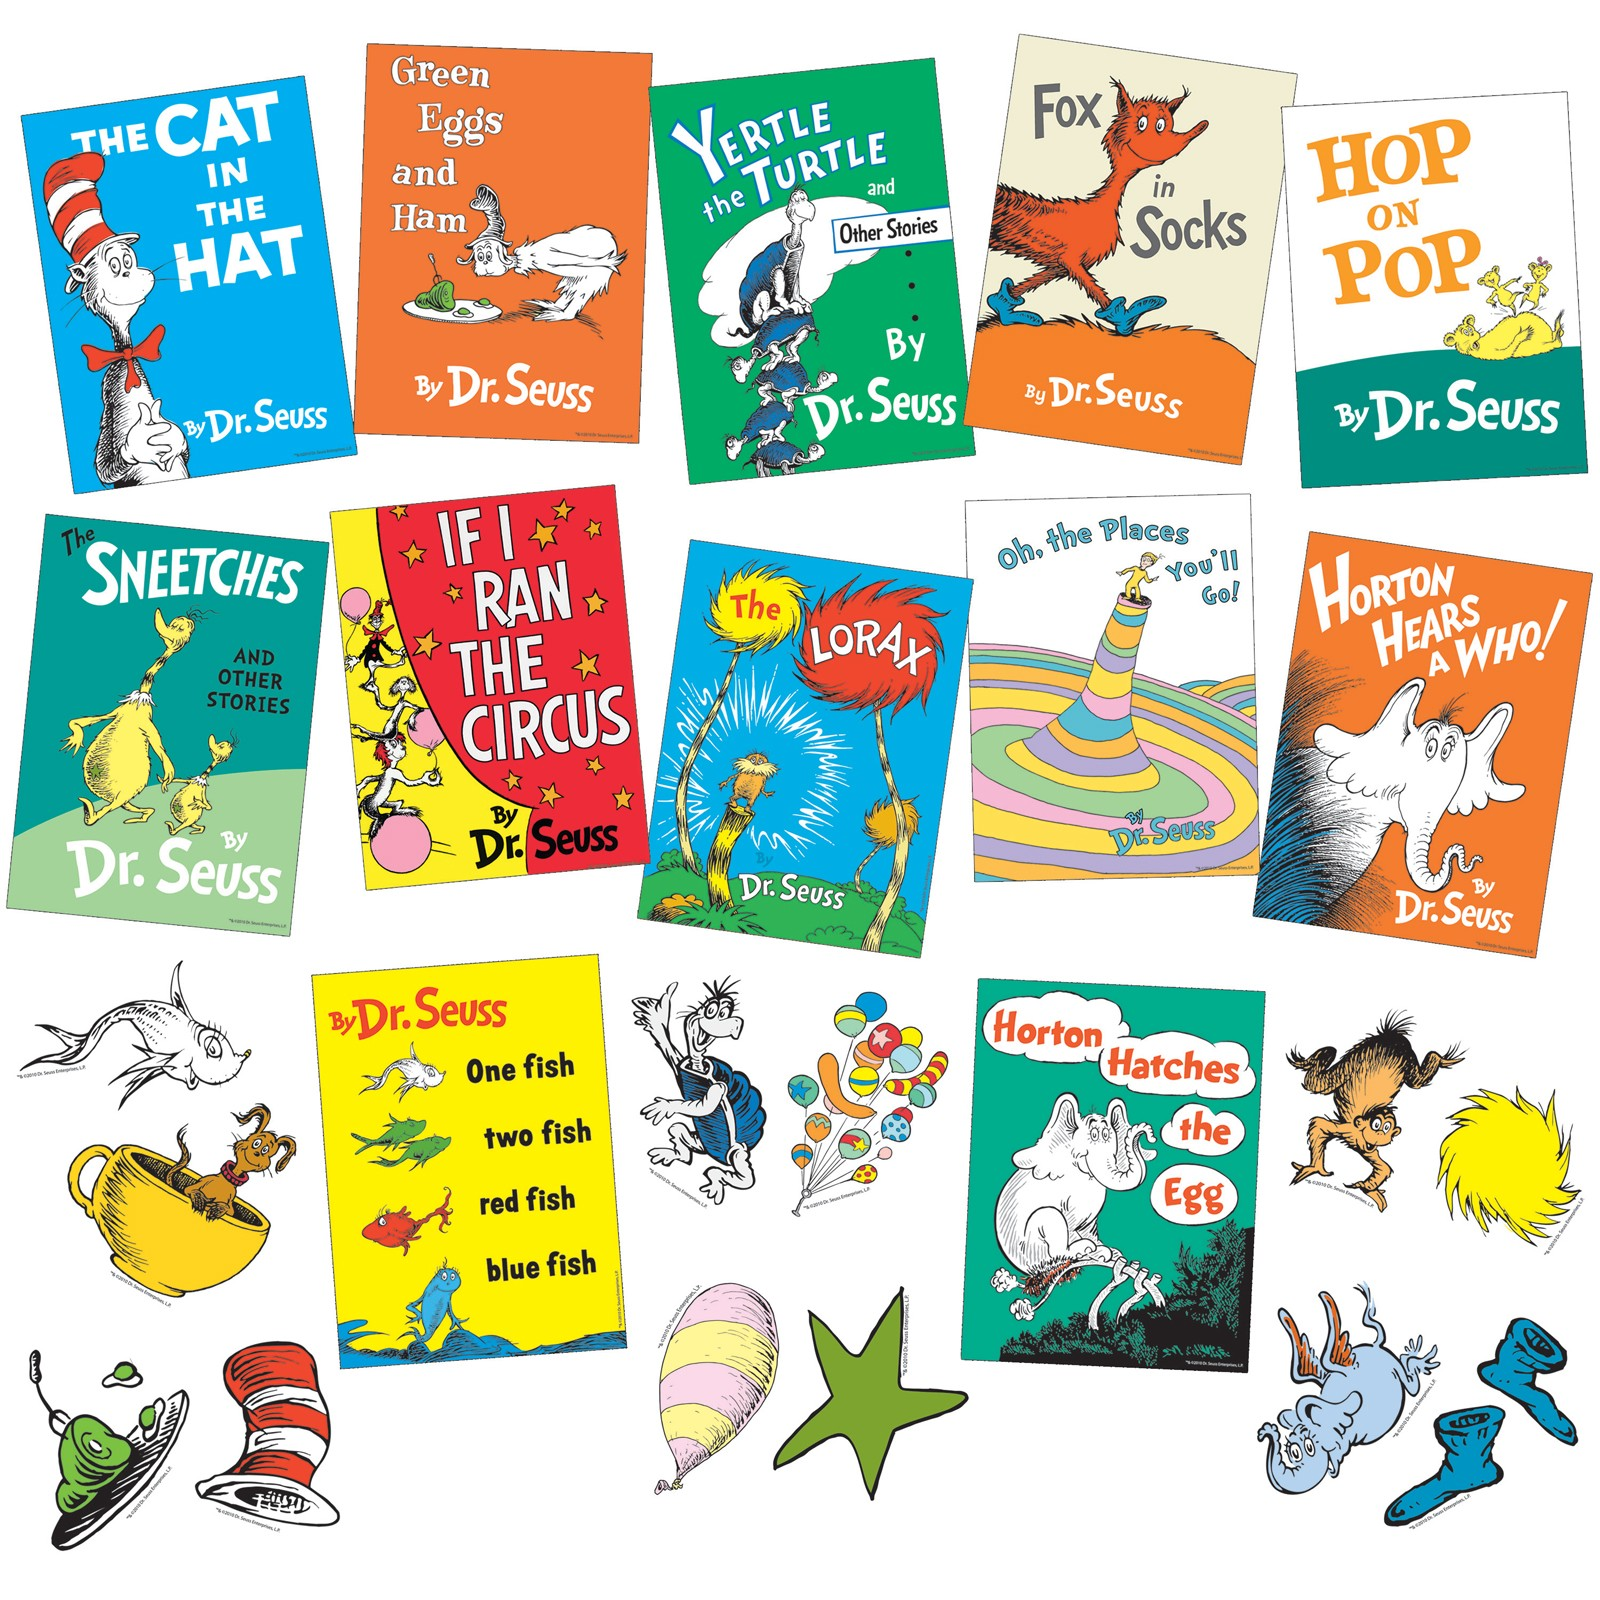 Dr. Seuss Set of 14 Books: Bright and Early Beginning and I Can Read It All By Myself (Fox in Socks, Green Eggs and Ham, Hop on Pop, Are You My Mother, Cat in the Hat, Cat in the Hat Comes Back, A People House, Wocket in my Pocket, One Fish Two Fish, Foot Book, Marvin K. Mooney, I Can Read Eyes Shut, A Book, B Book).